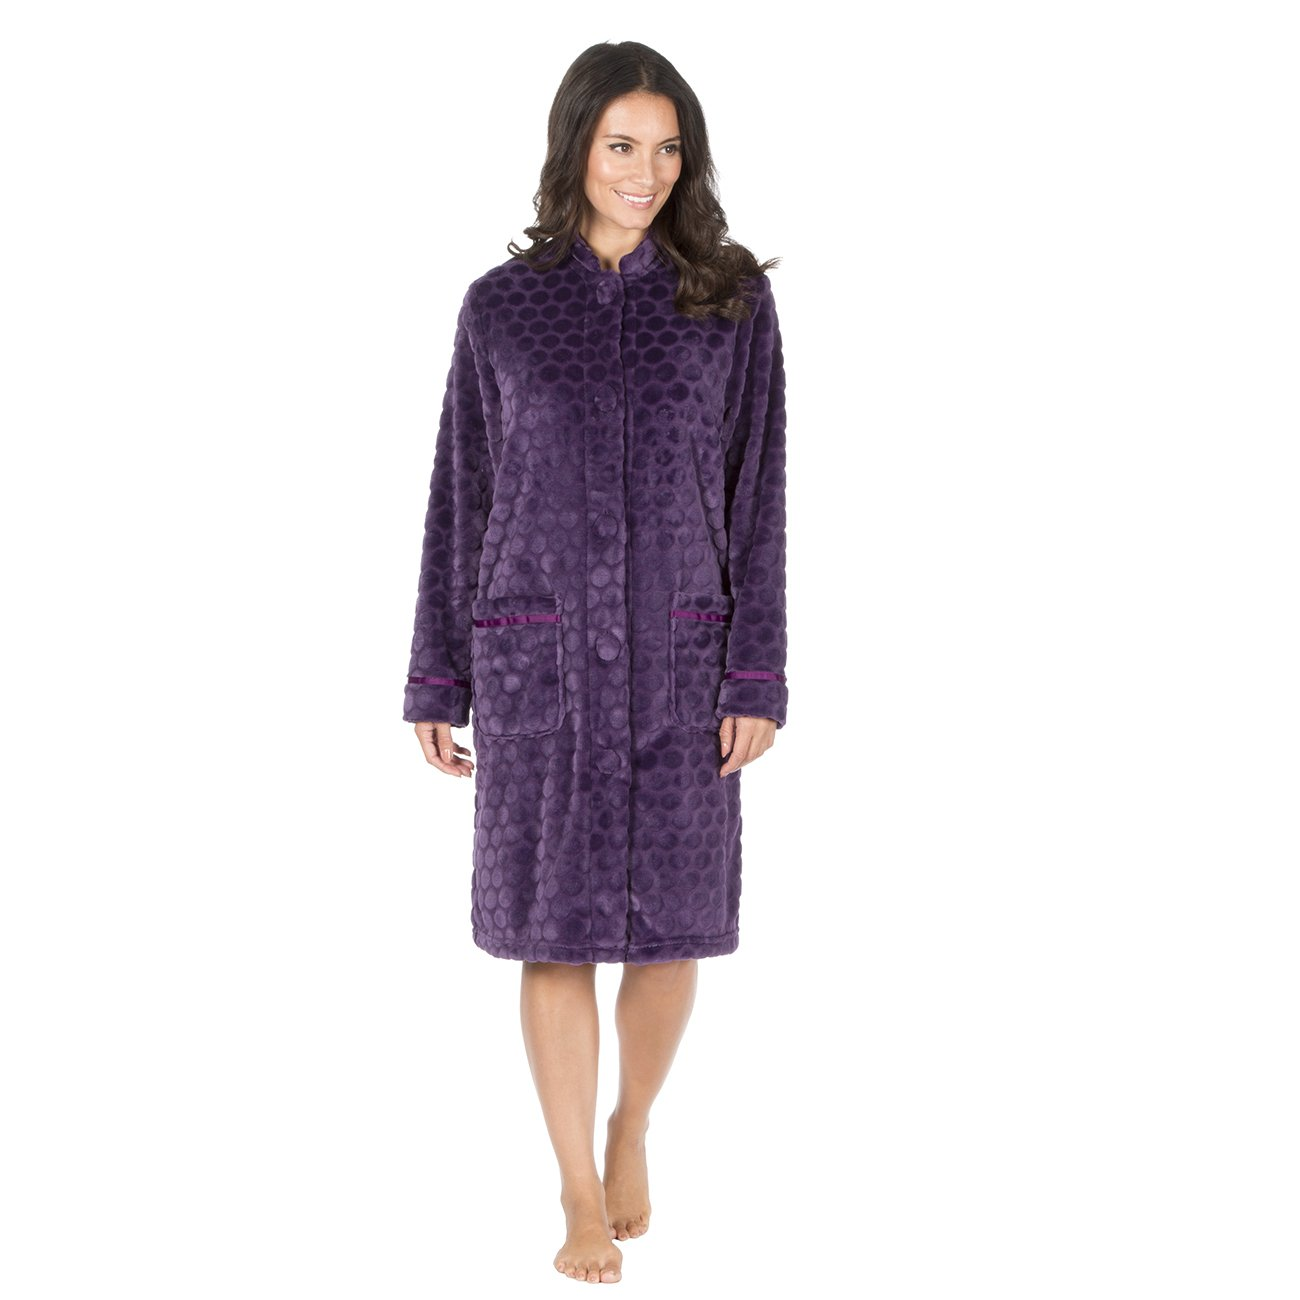 Forever Dreaming Ladies Fleece Housecoat with Buttons | Sizes S-XL | Lightweight Dressing Gown